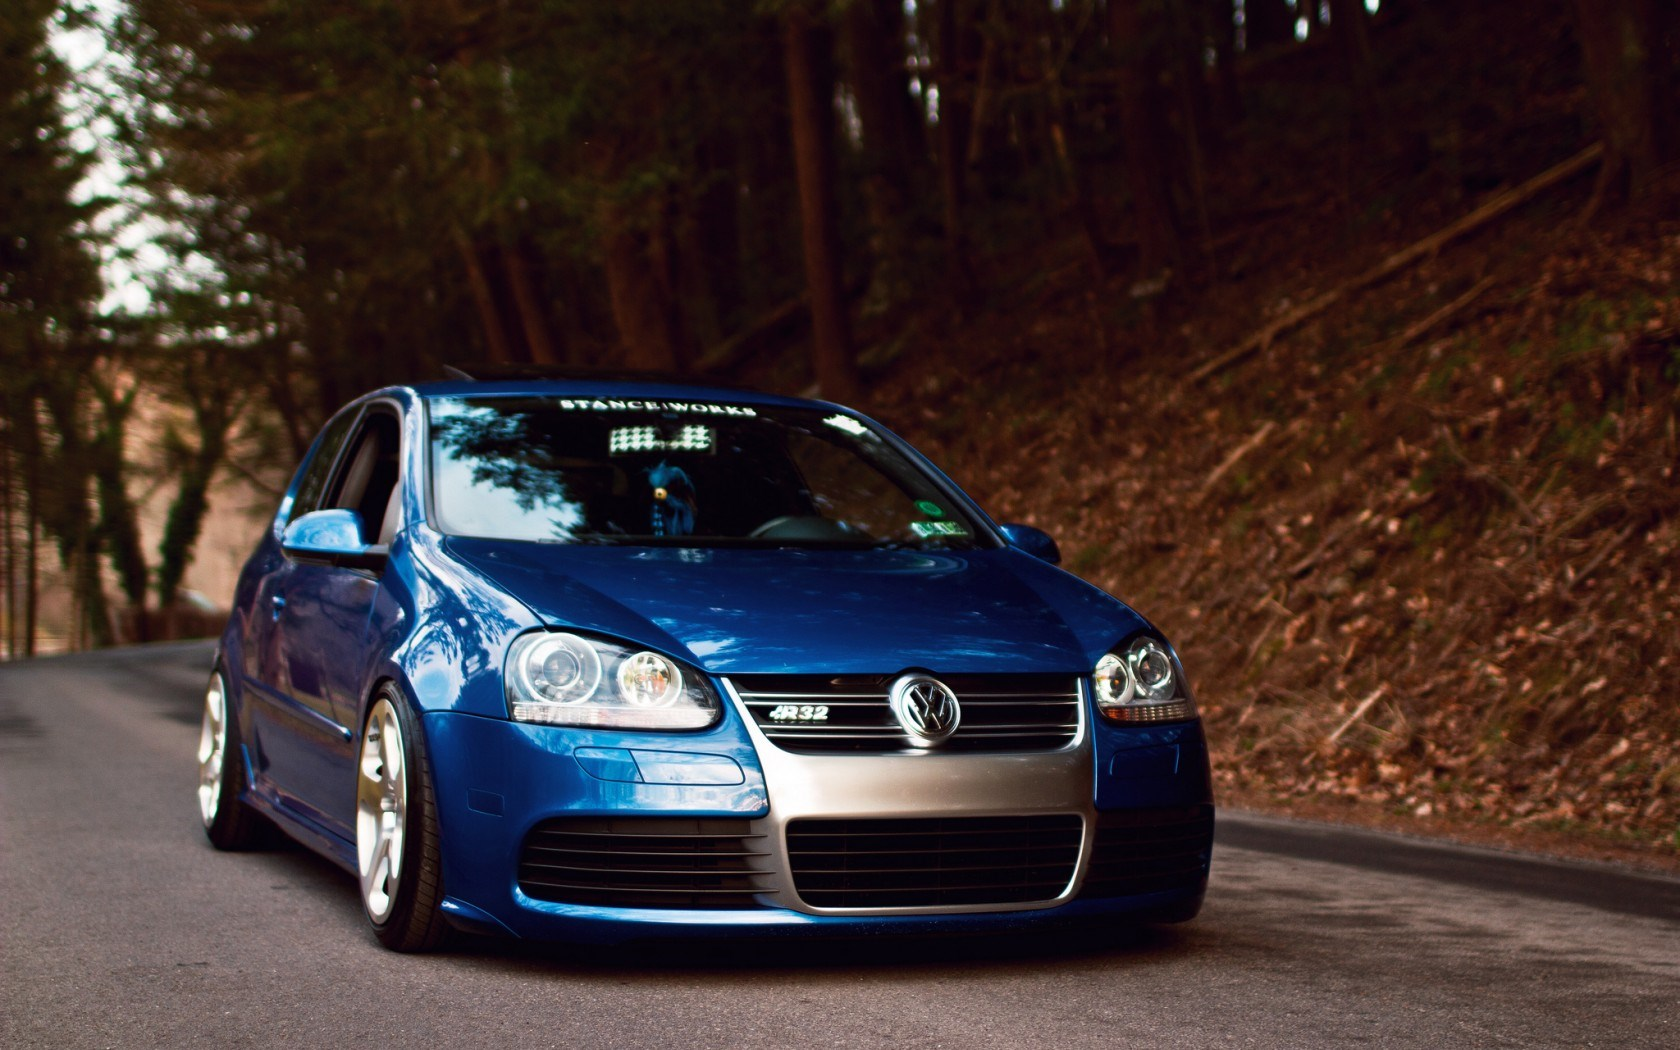 VW R32 GTI Tuning Car